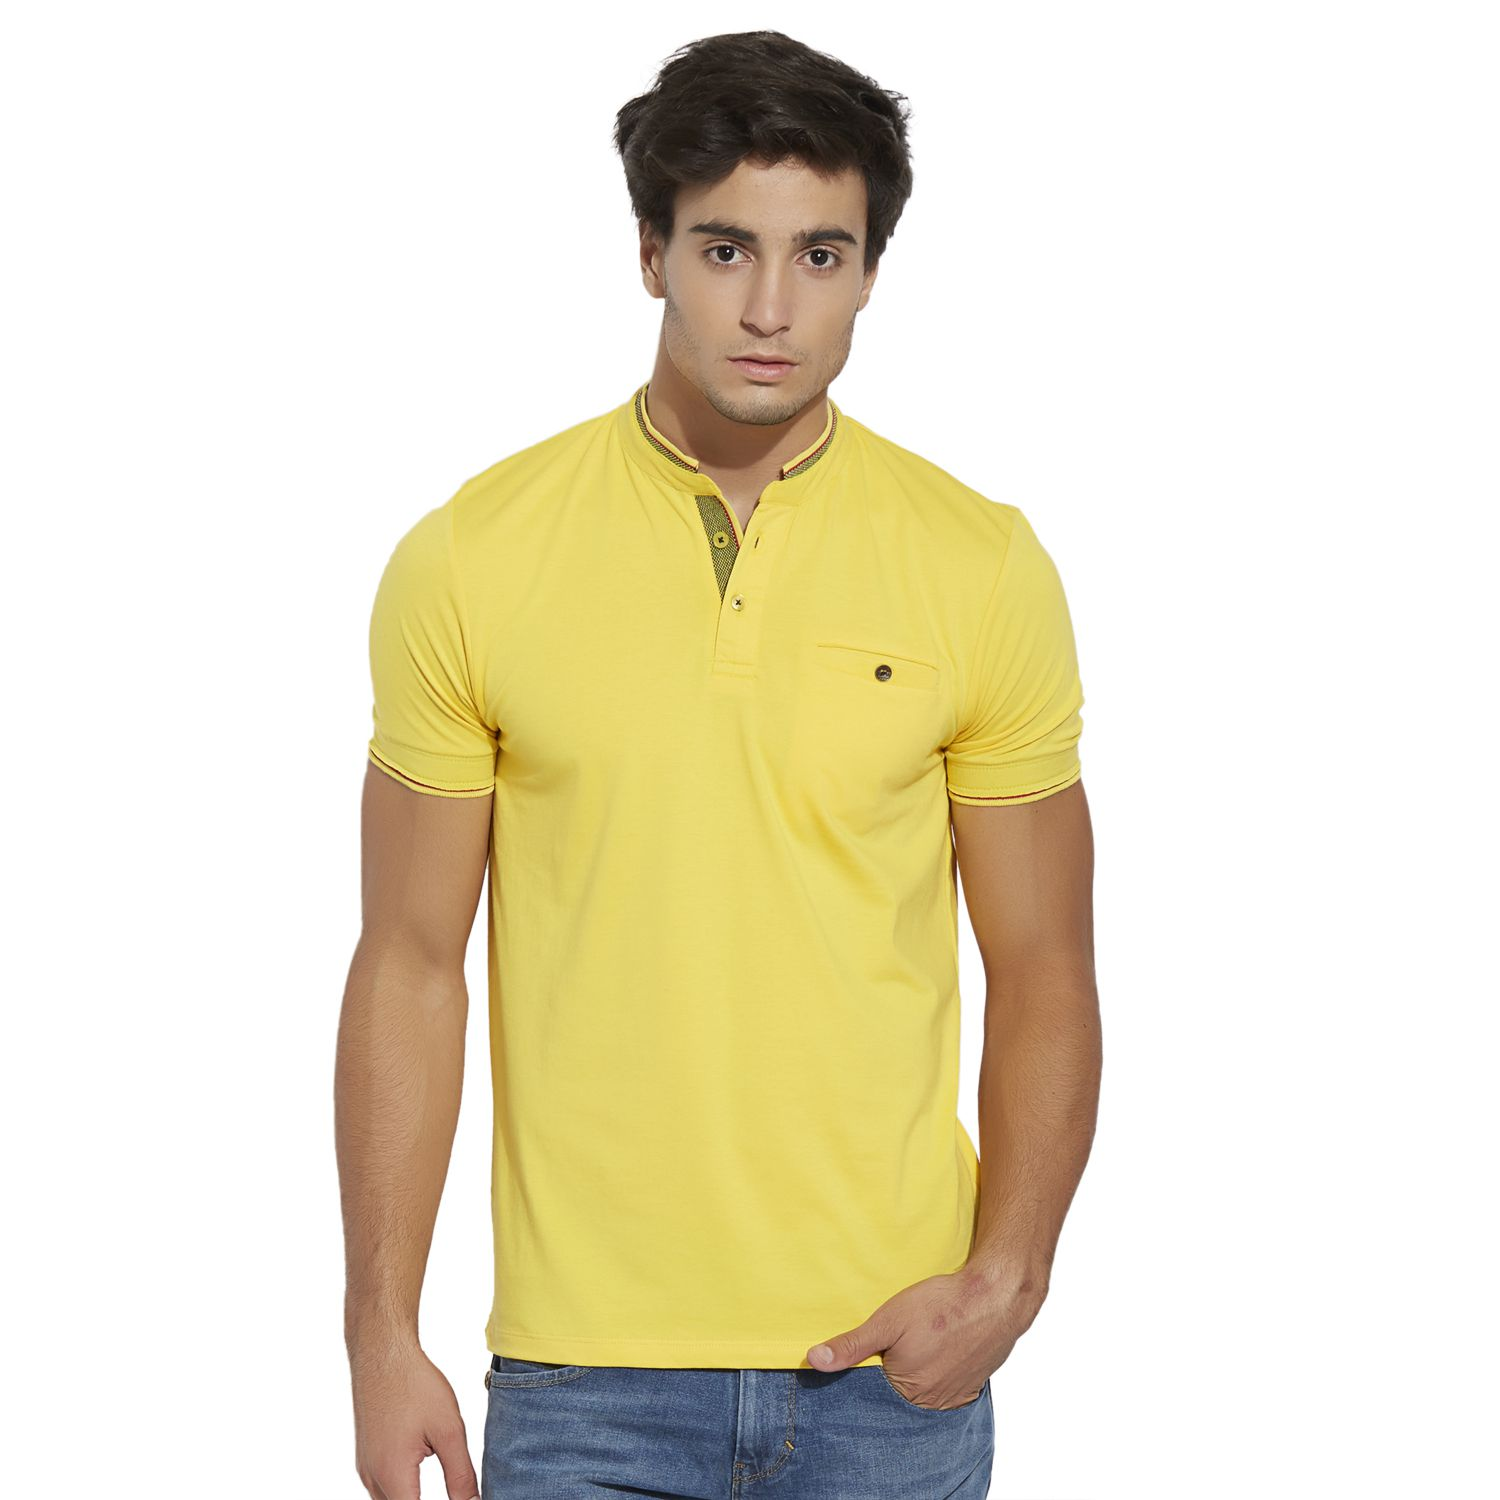 BONATY Yellow Lycra Cotton Blend Mandarin Half Sleeves Solid T-Shirt For Men